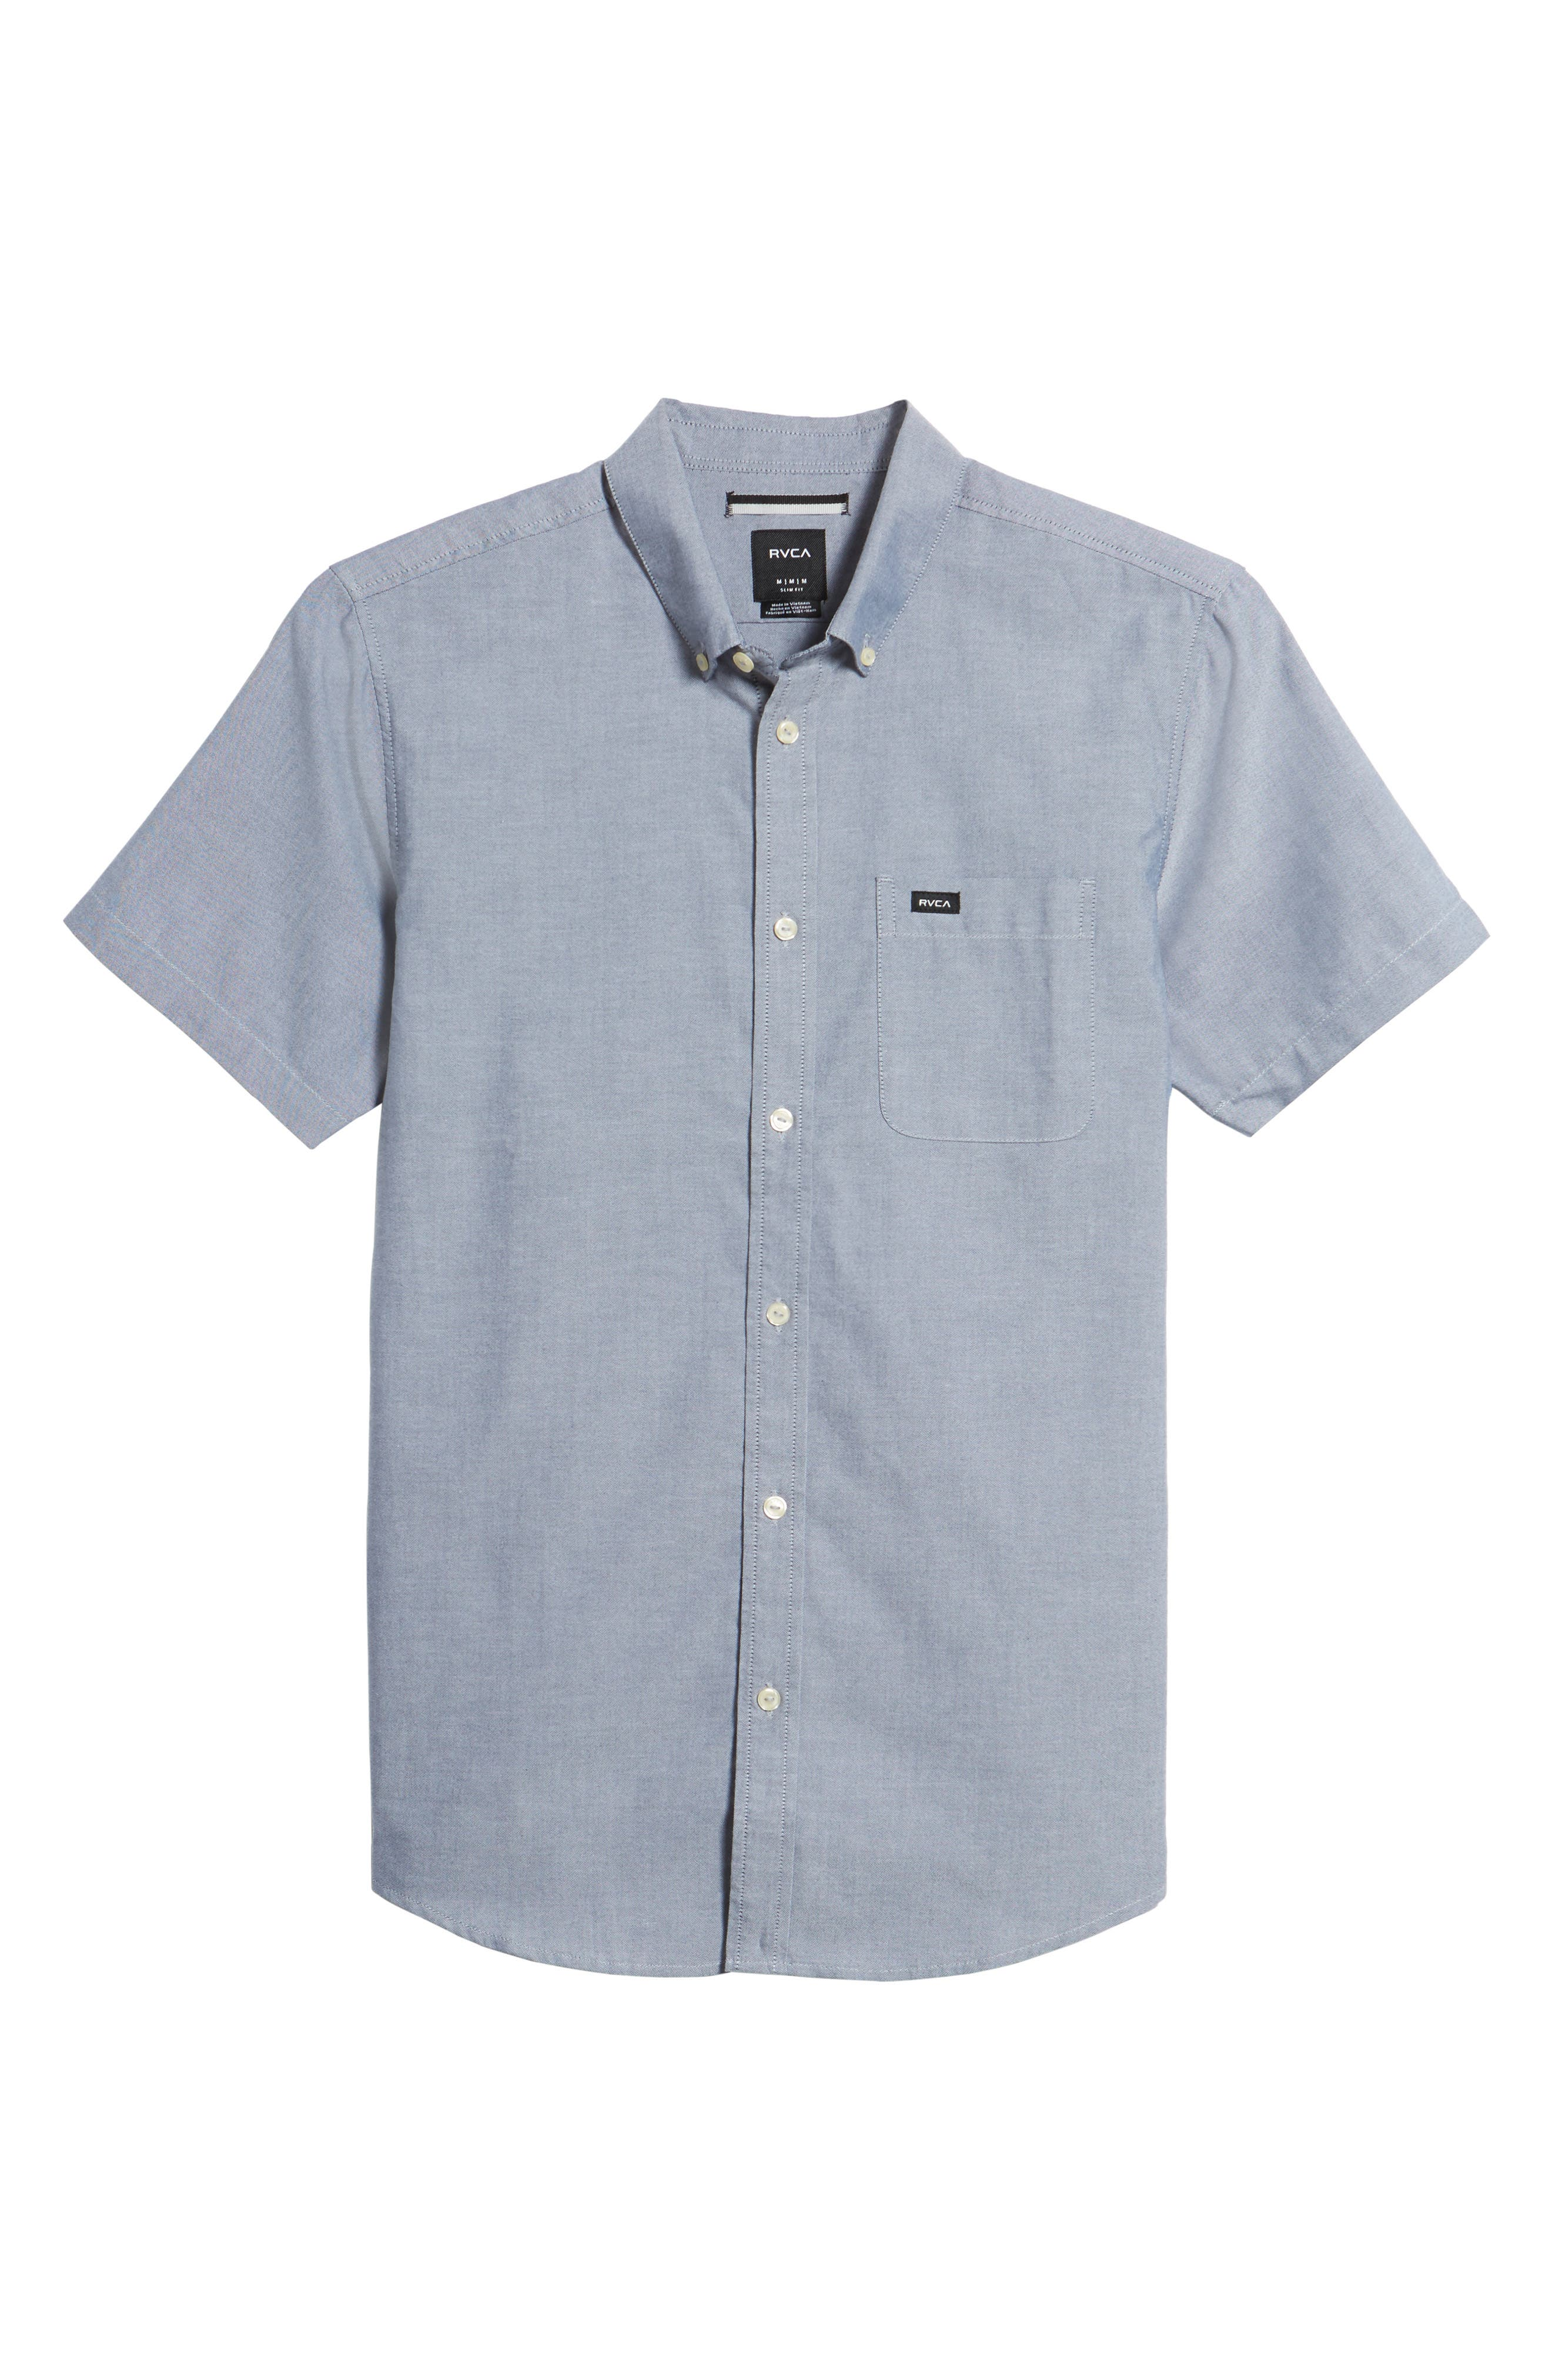 RVCA, 'That'll Do' Slim Fit Short Sleeve Oxford Shirt, Main thumbnail 1, color, DISTANT BLUE